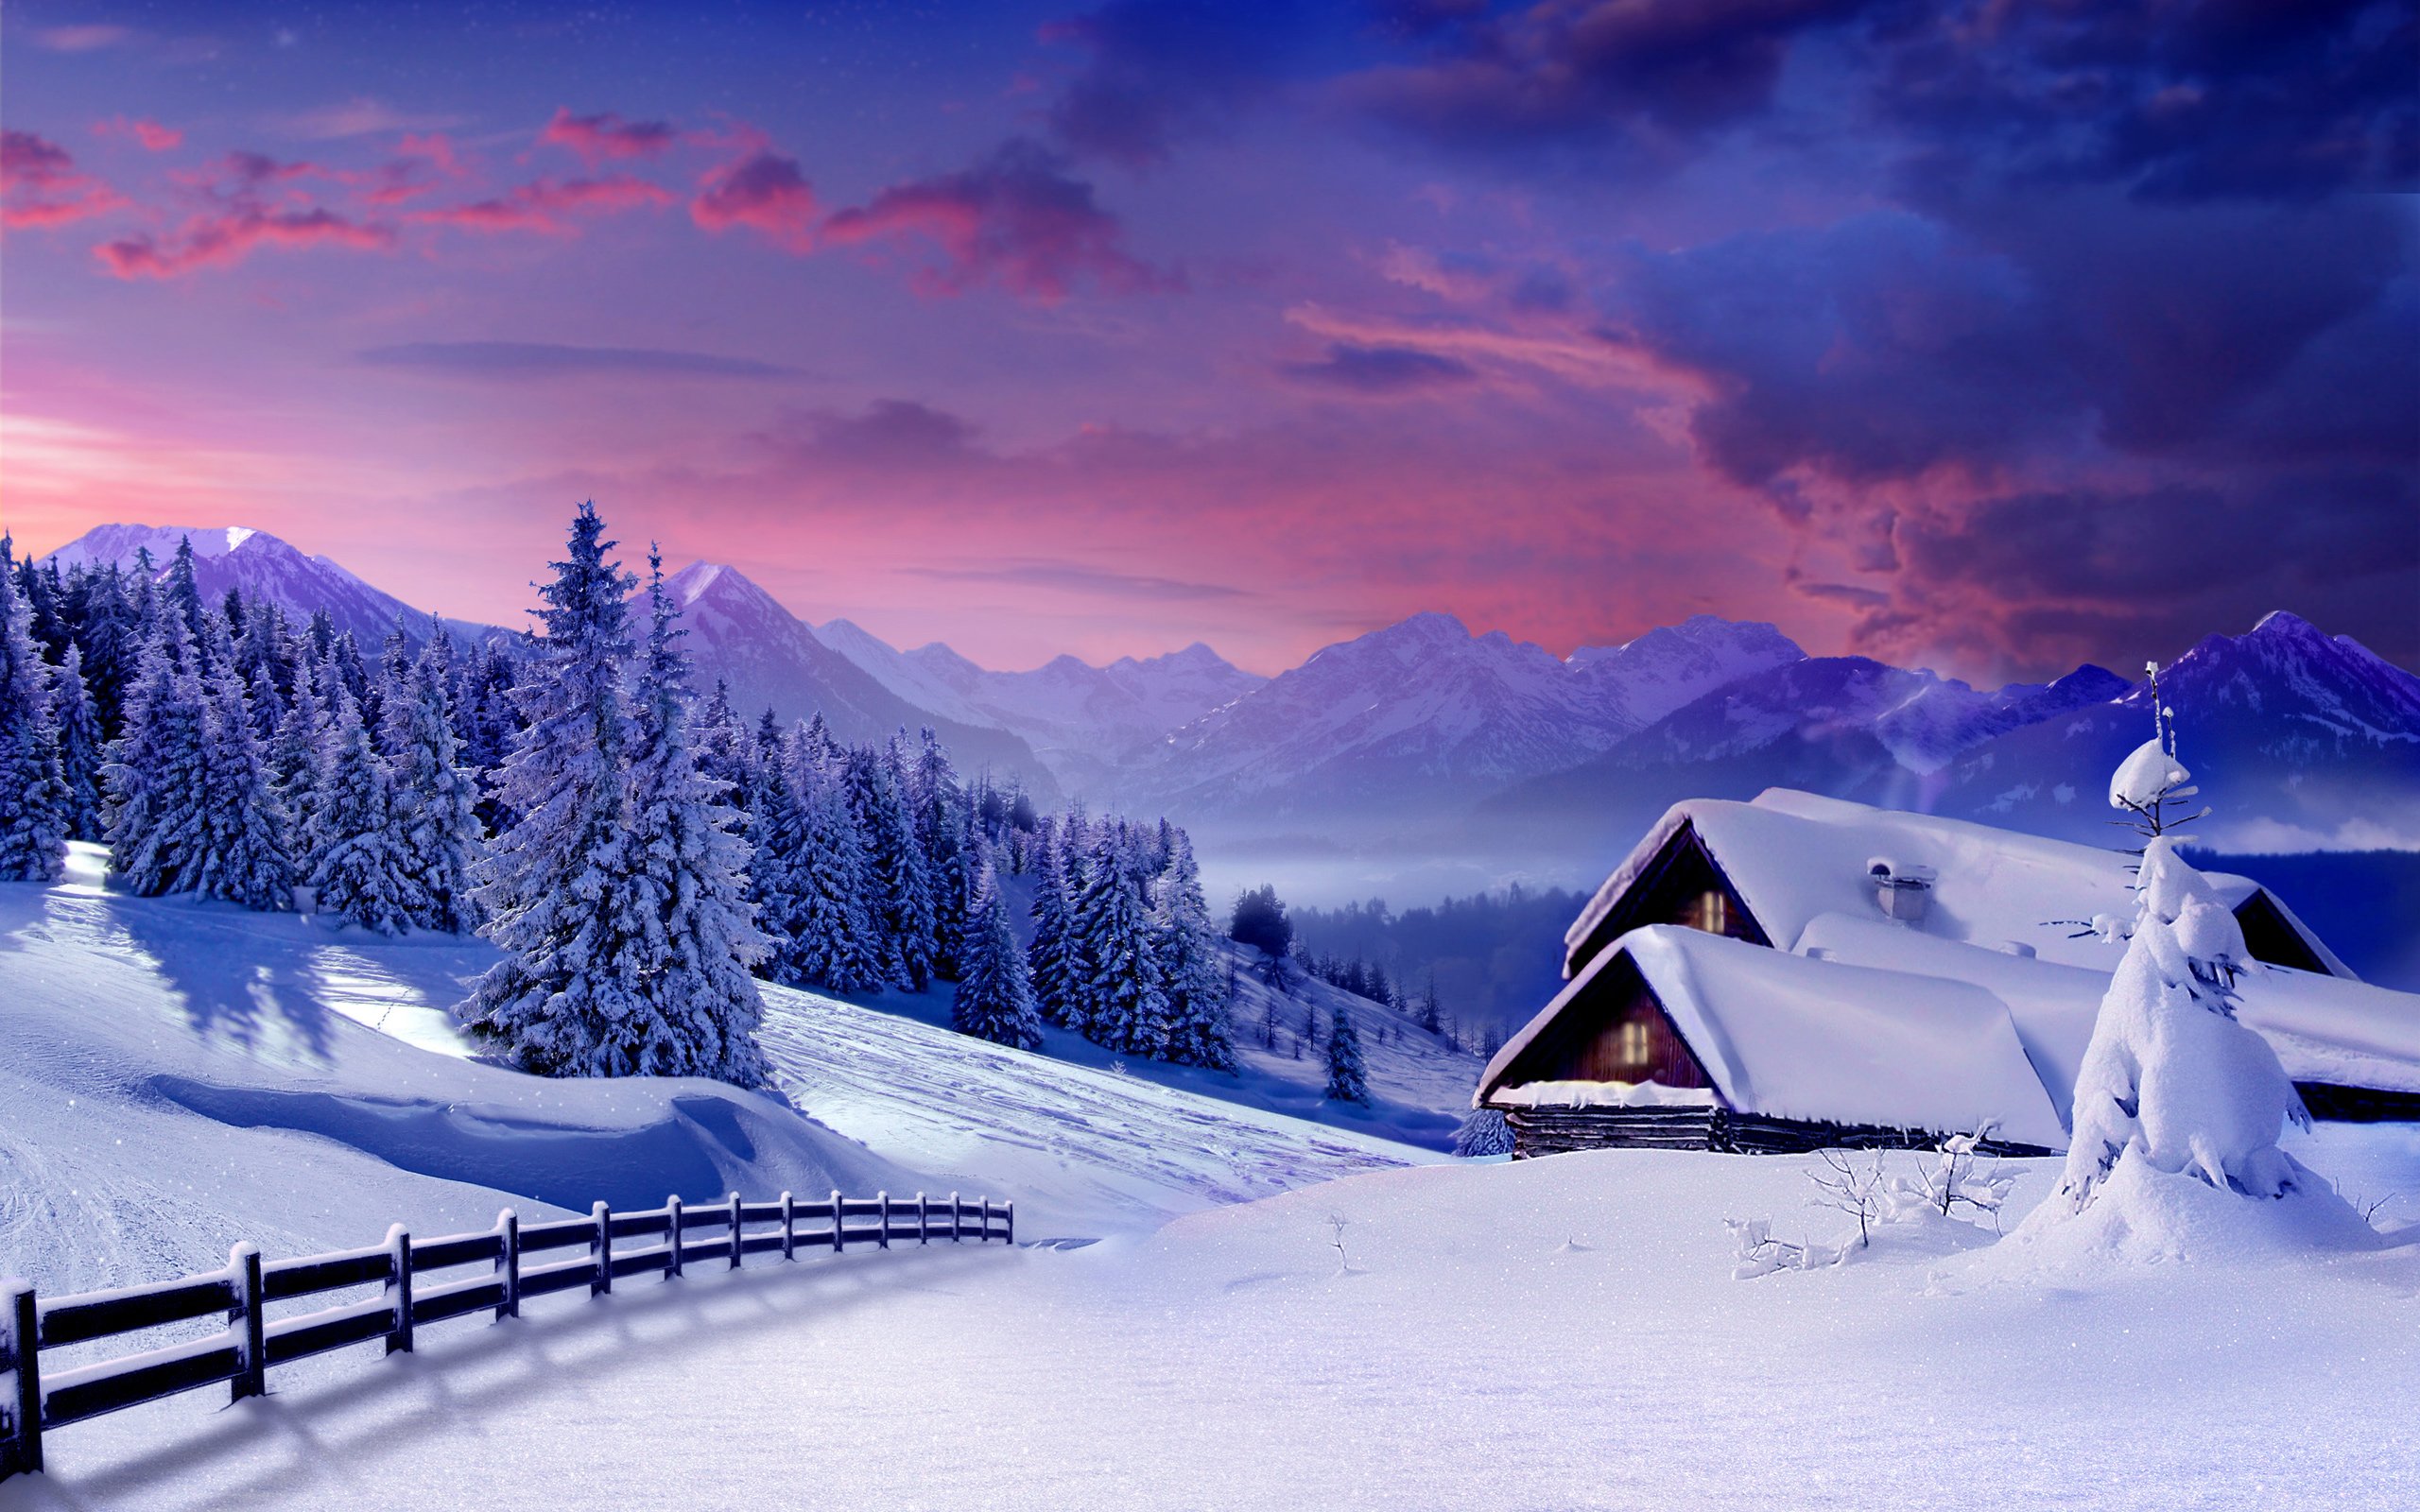 winter hd wallpapers winter desktop wallpapers nature winter